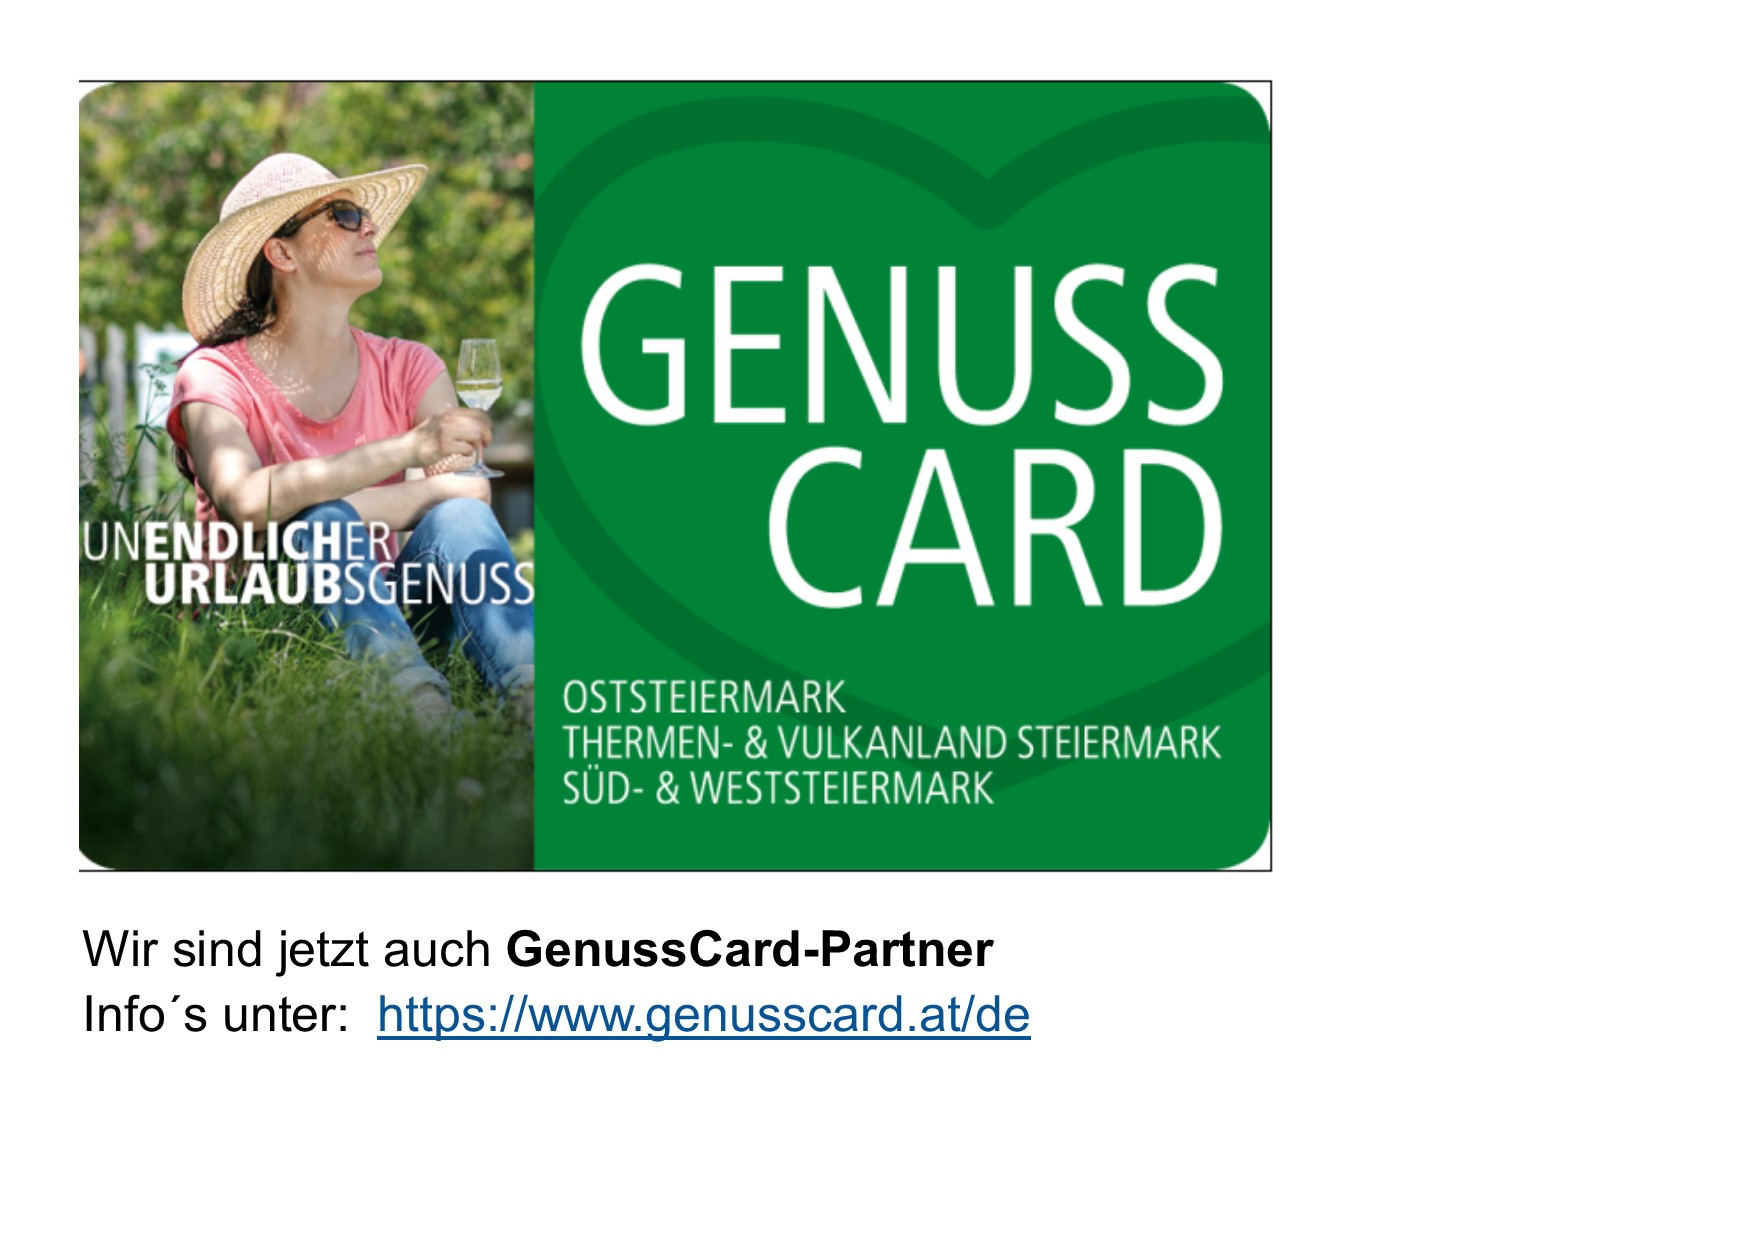 Genusscard Partner